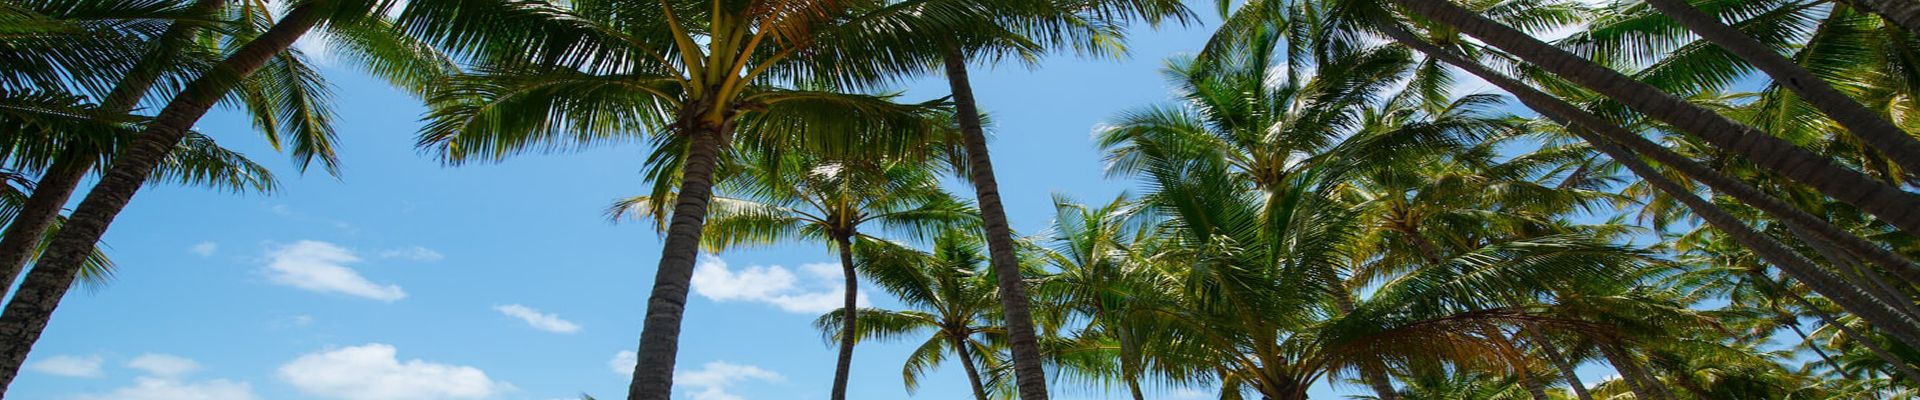 Palm Cove Cairns Holiday Apartment Accommodation FAQs